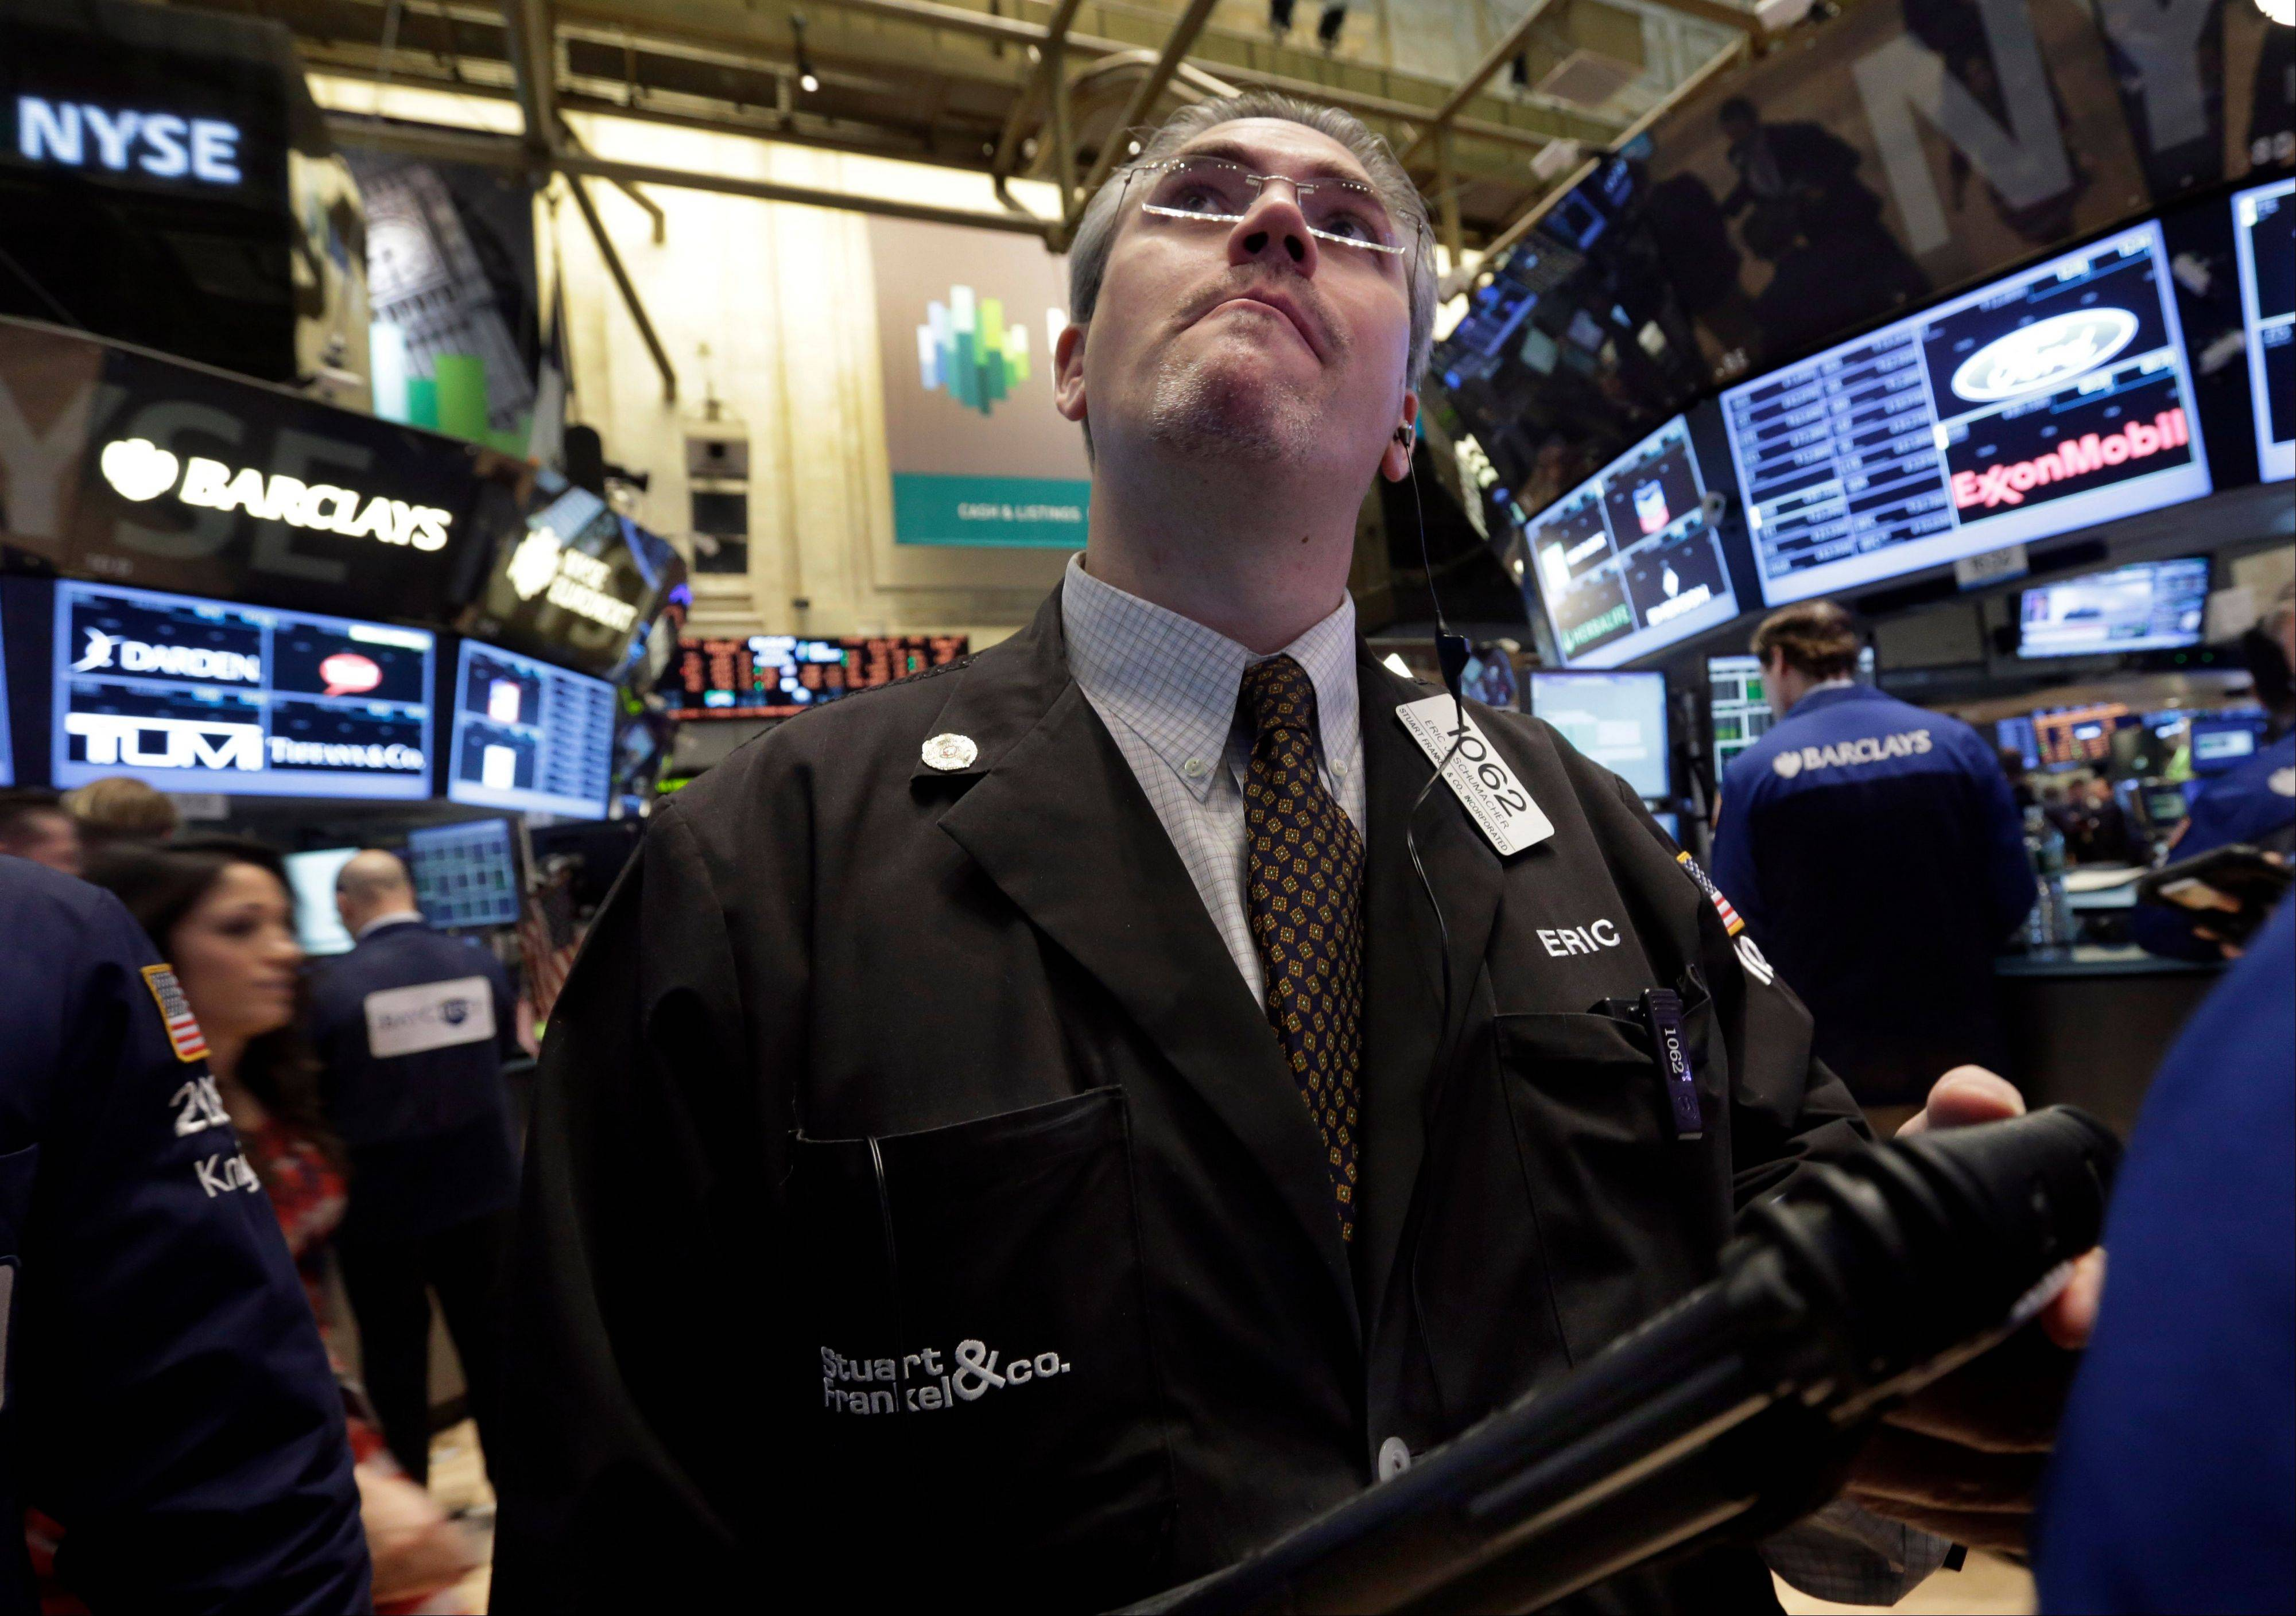 U.S. stocks advanced, sending benchmark indexes to five-year highs, as earnings topped estimates and investors awaited President Barack Obama�s State of the Union address.